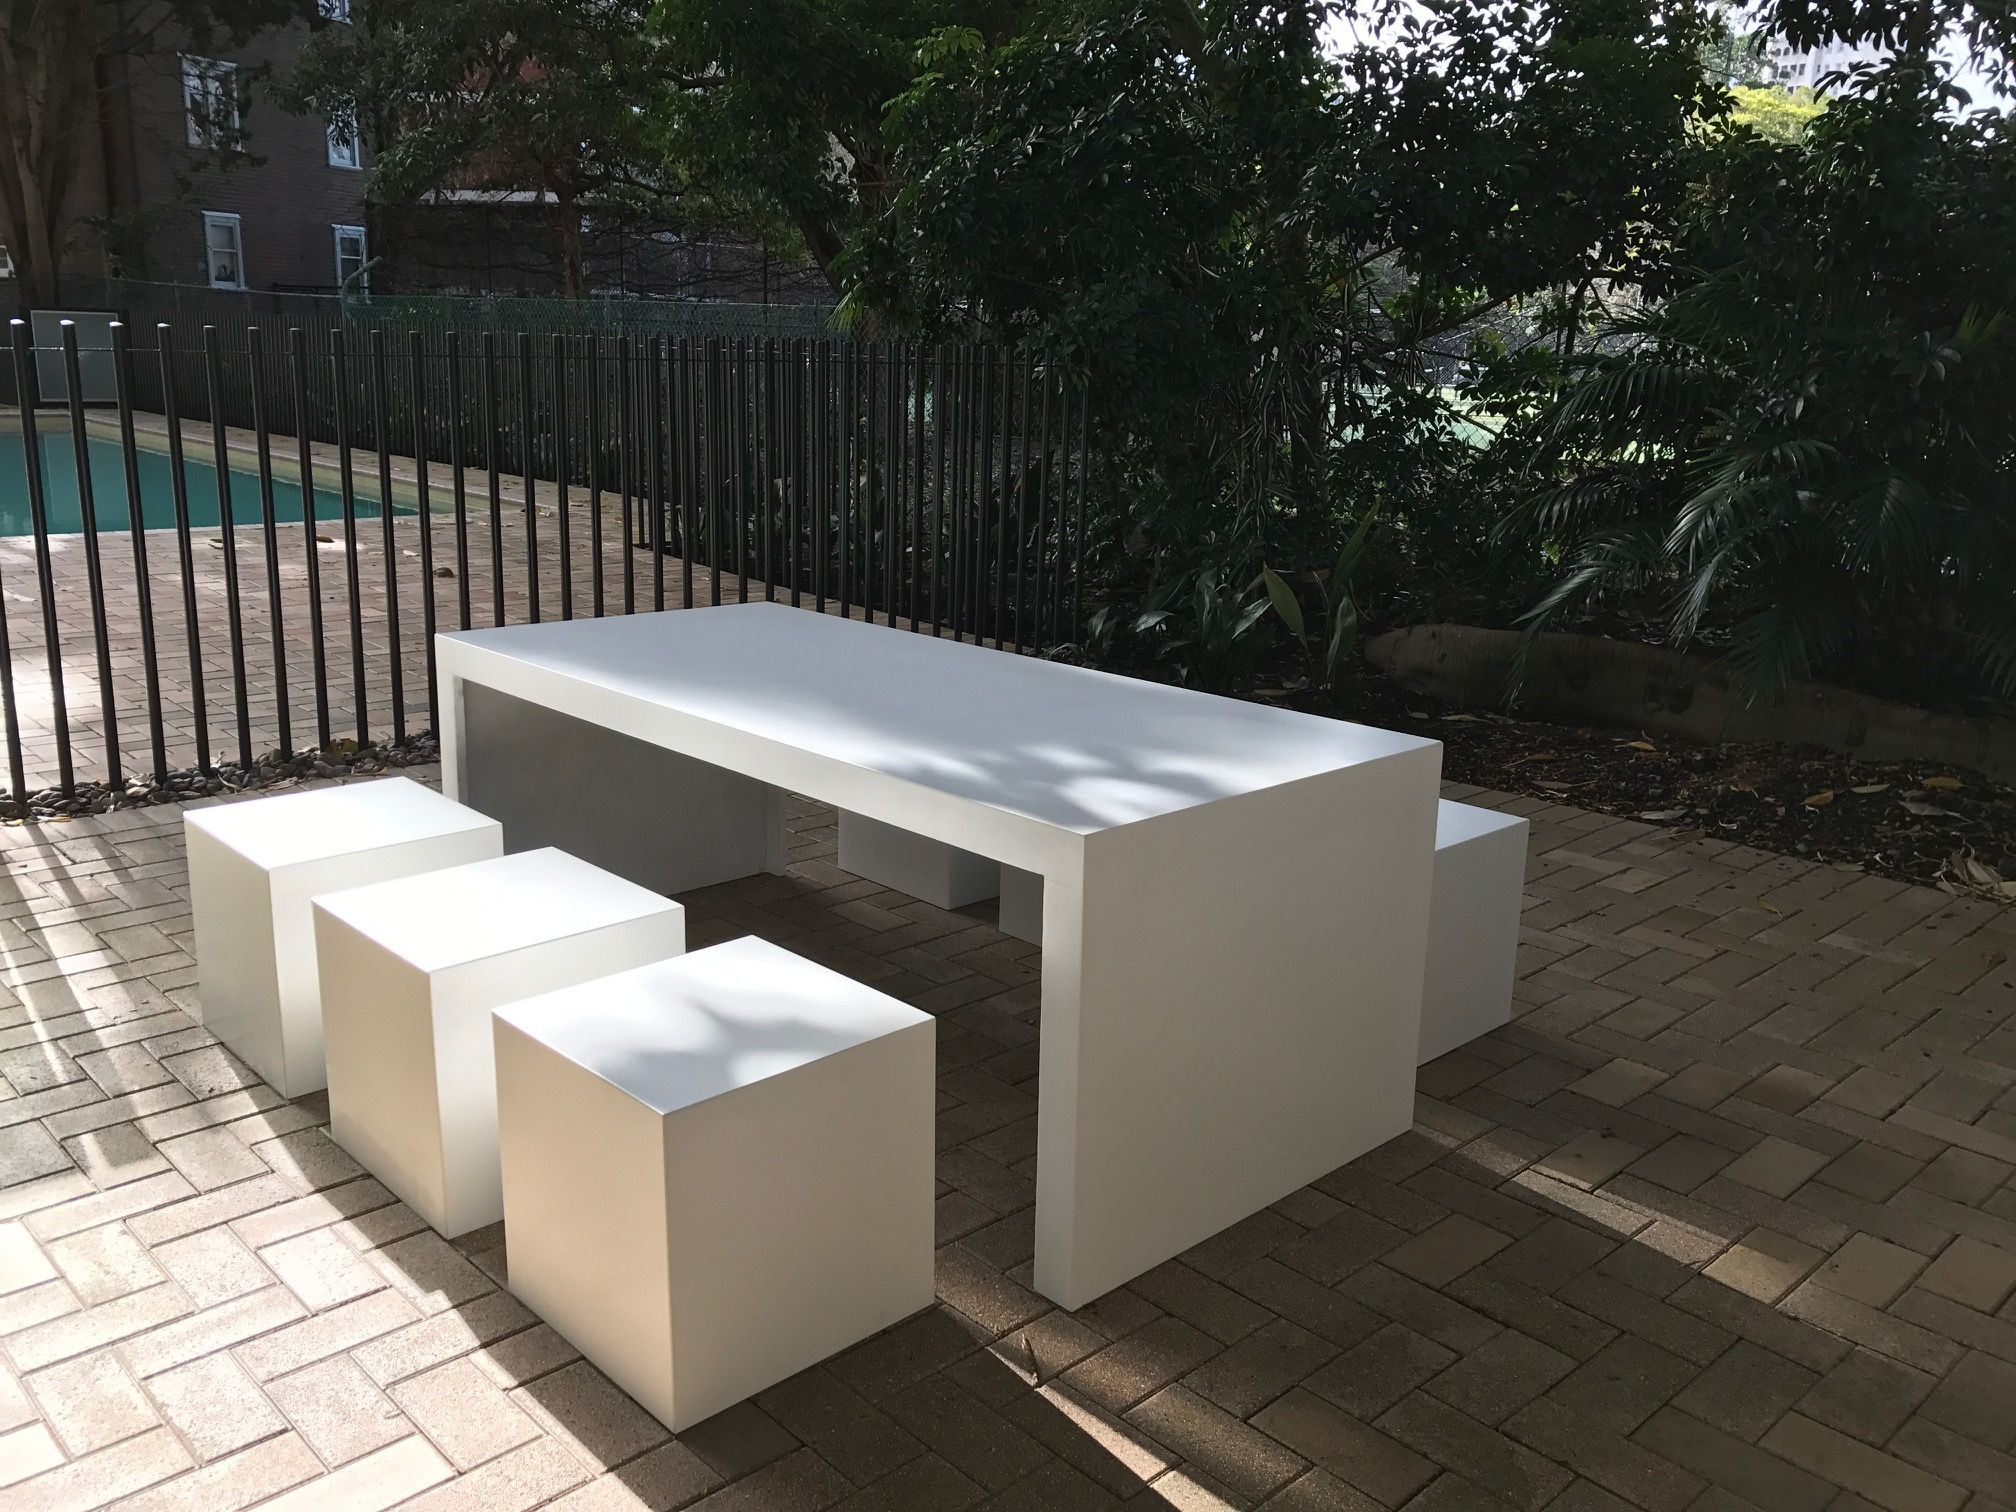 Outdoor Concrete Table With 6 Seating Cubes